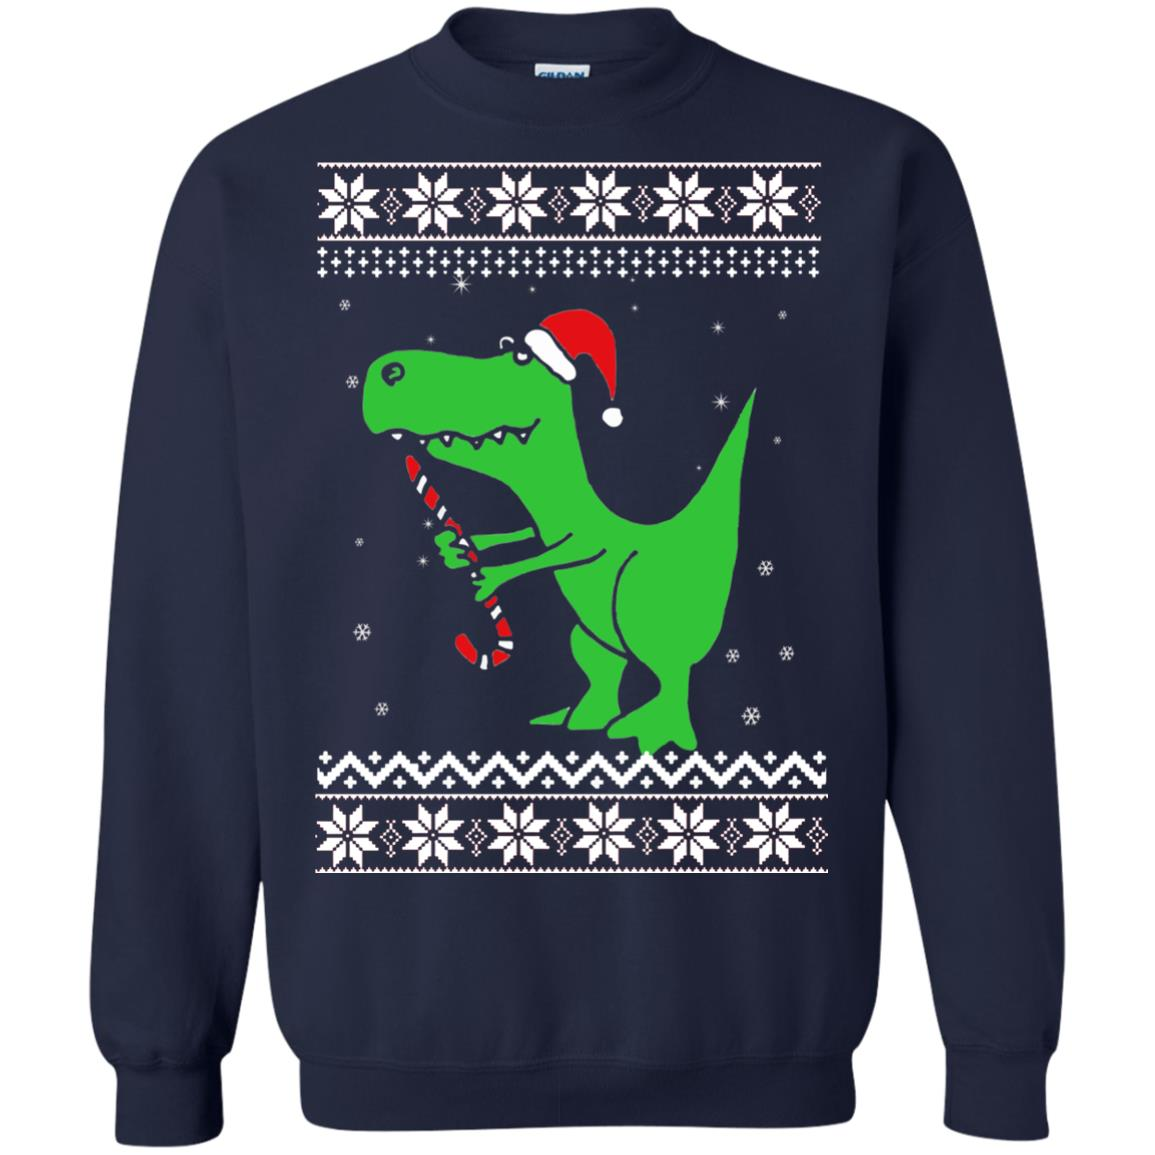 image 6097 - T-Rex Santa Christmas Sweater, Long Sleeve